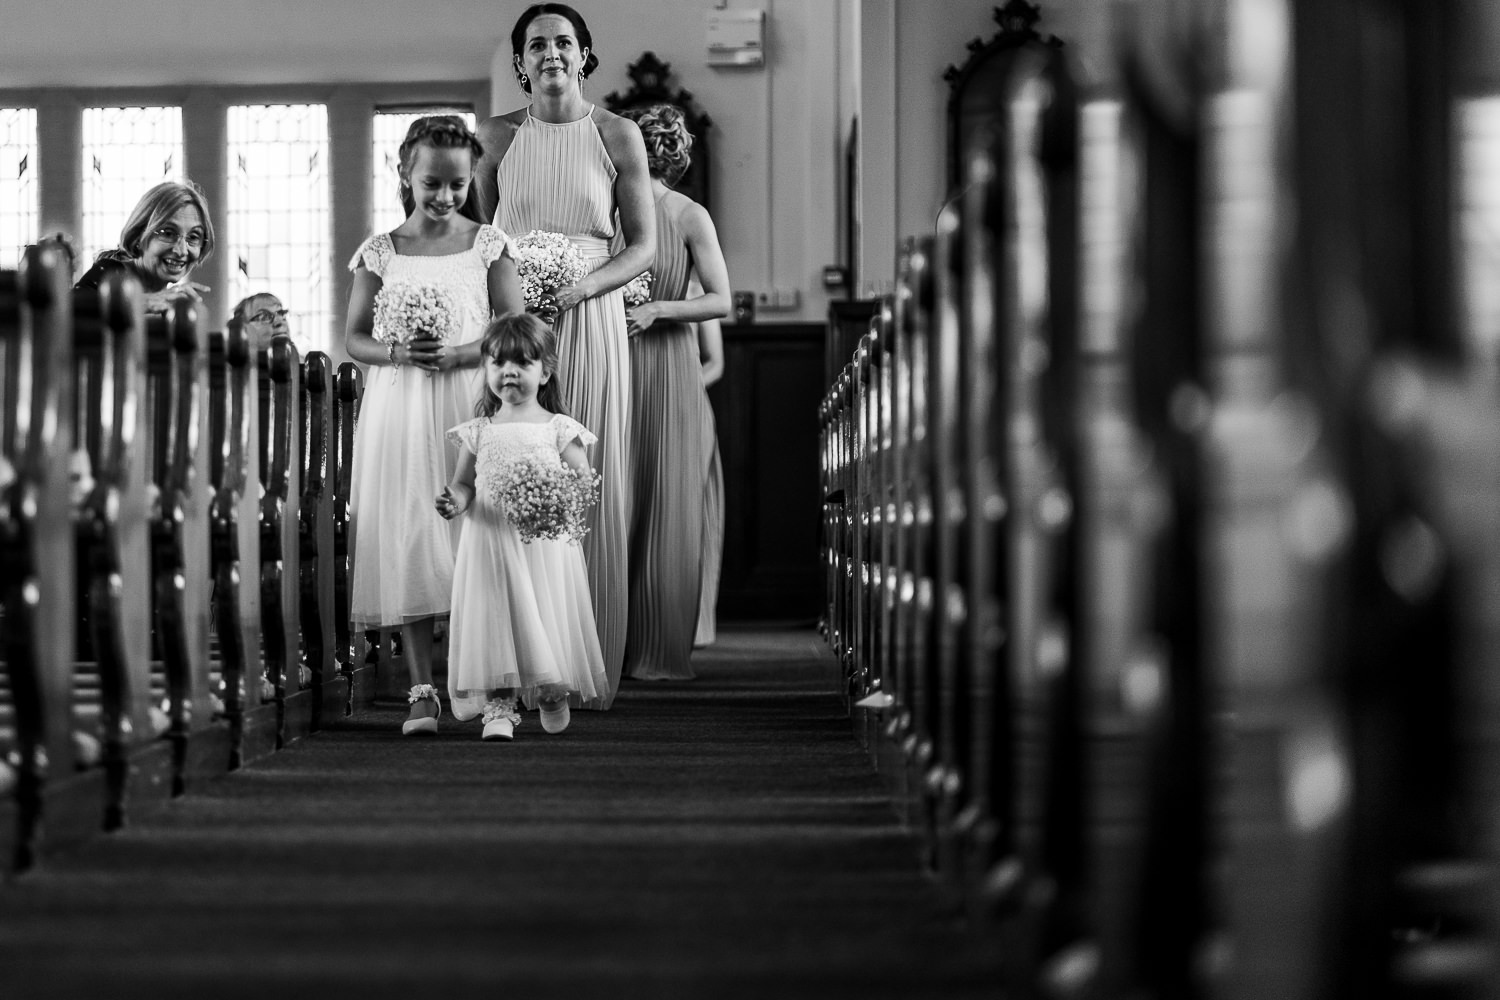 Flower girls walking into church